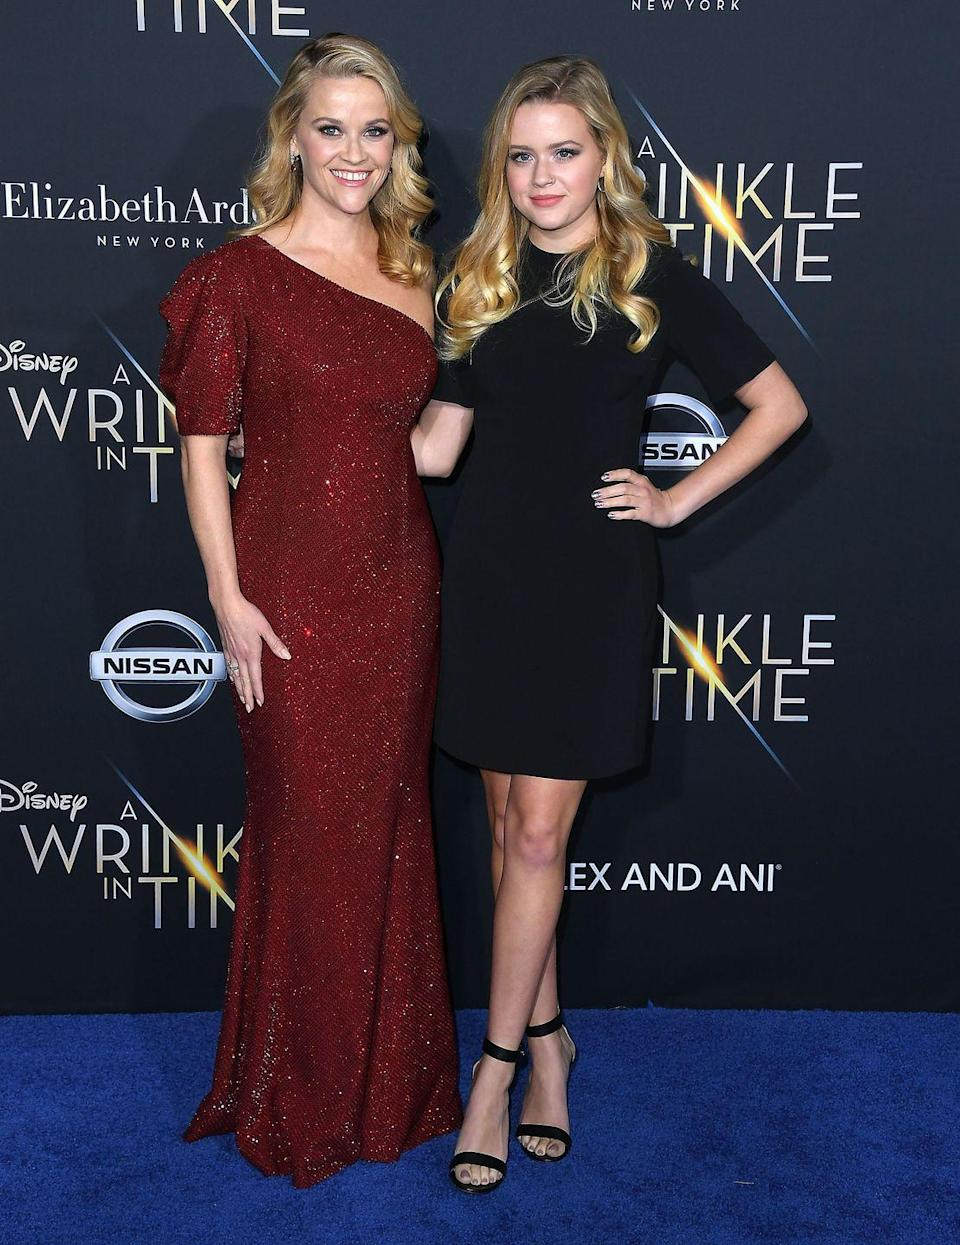 """<p>Reese<span class=""""redactor-invisible-space""""> and Ava pose together at the LA p</span>remiere Of Disney's A Wrinkle In Time</p>"""